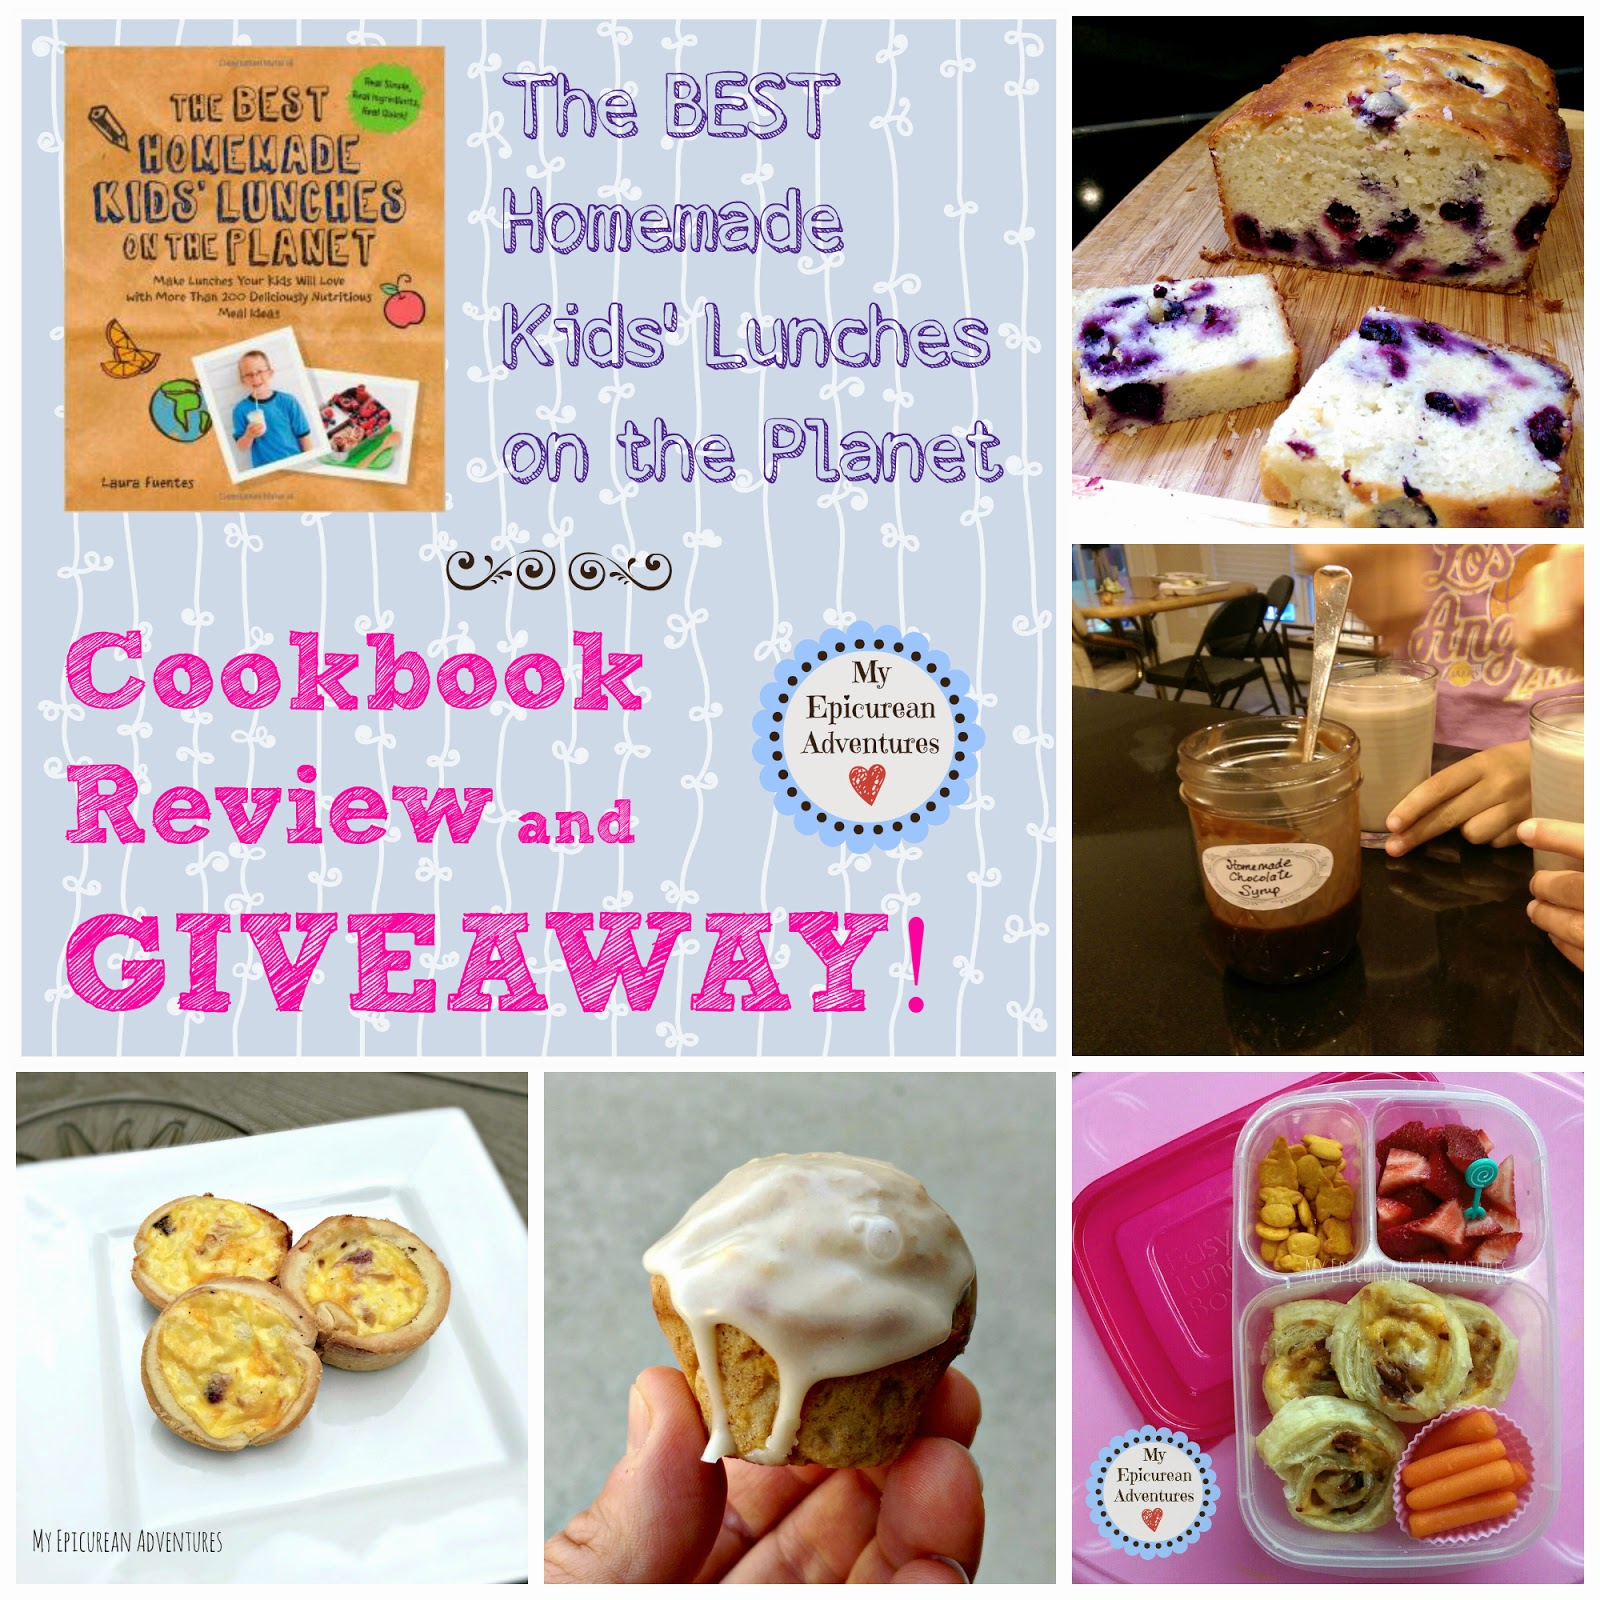 The Best Homemade Kids' Lunches on the Planet Cookbook Review and Giveaway. Ends at 11:59pm on Thursday 4/23/15